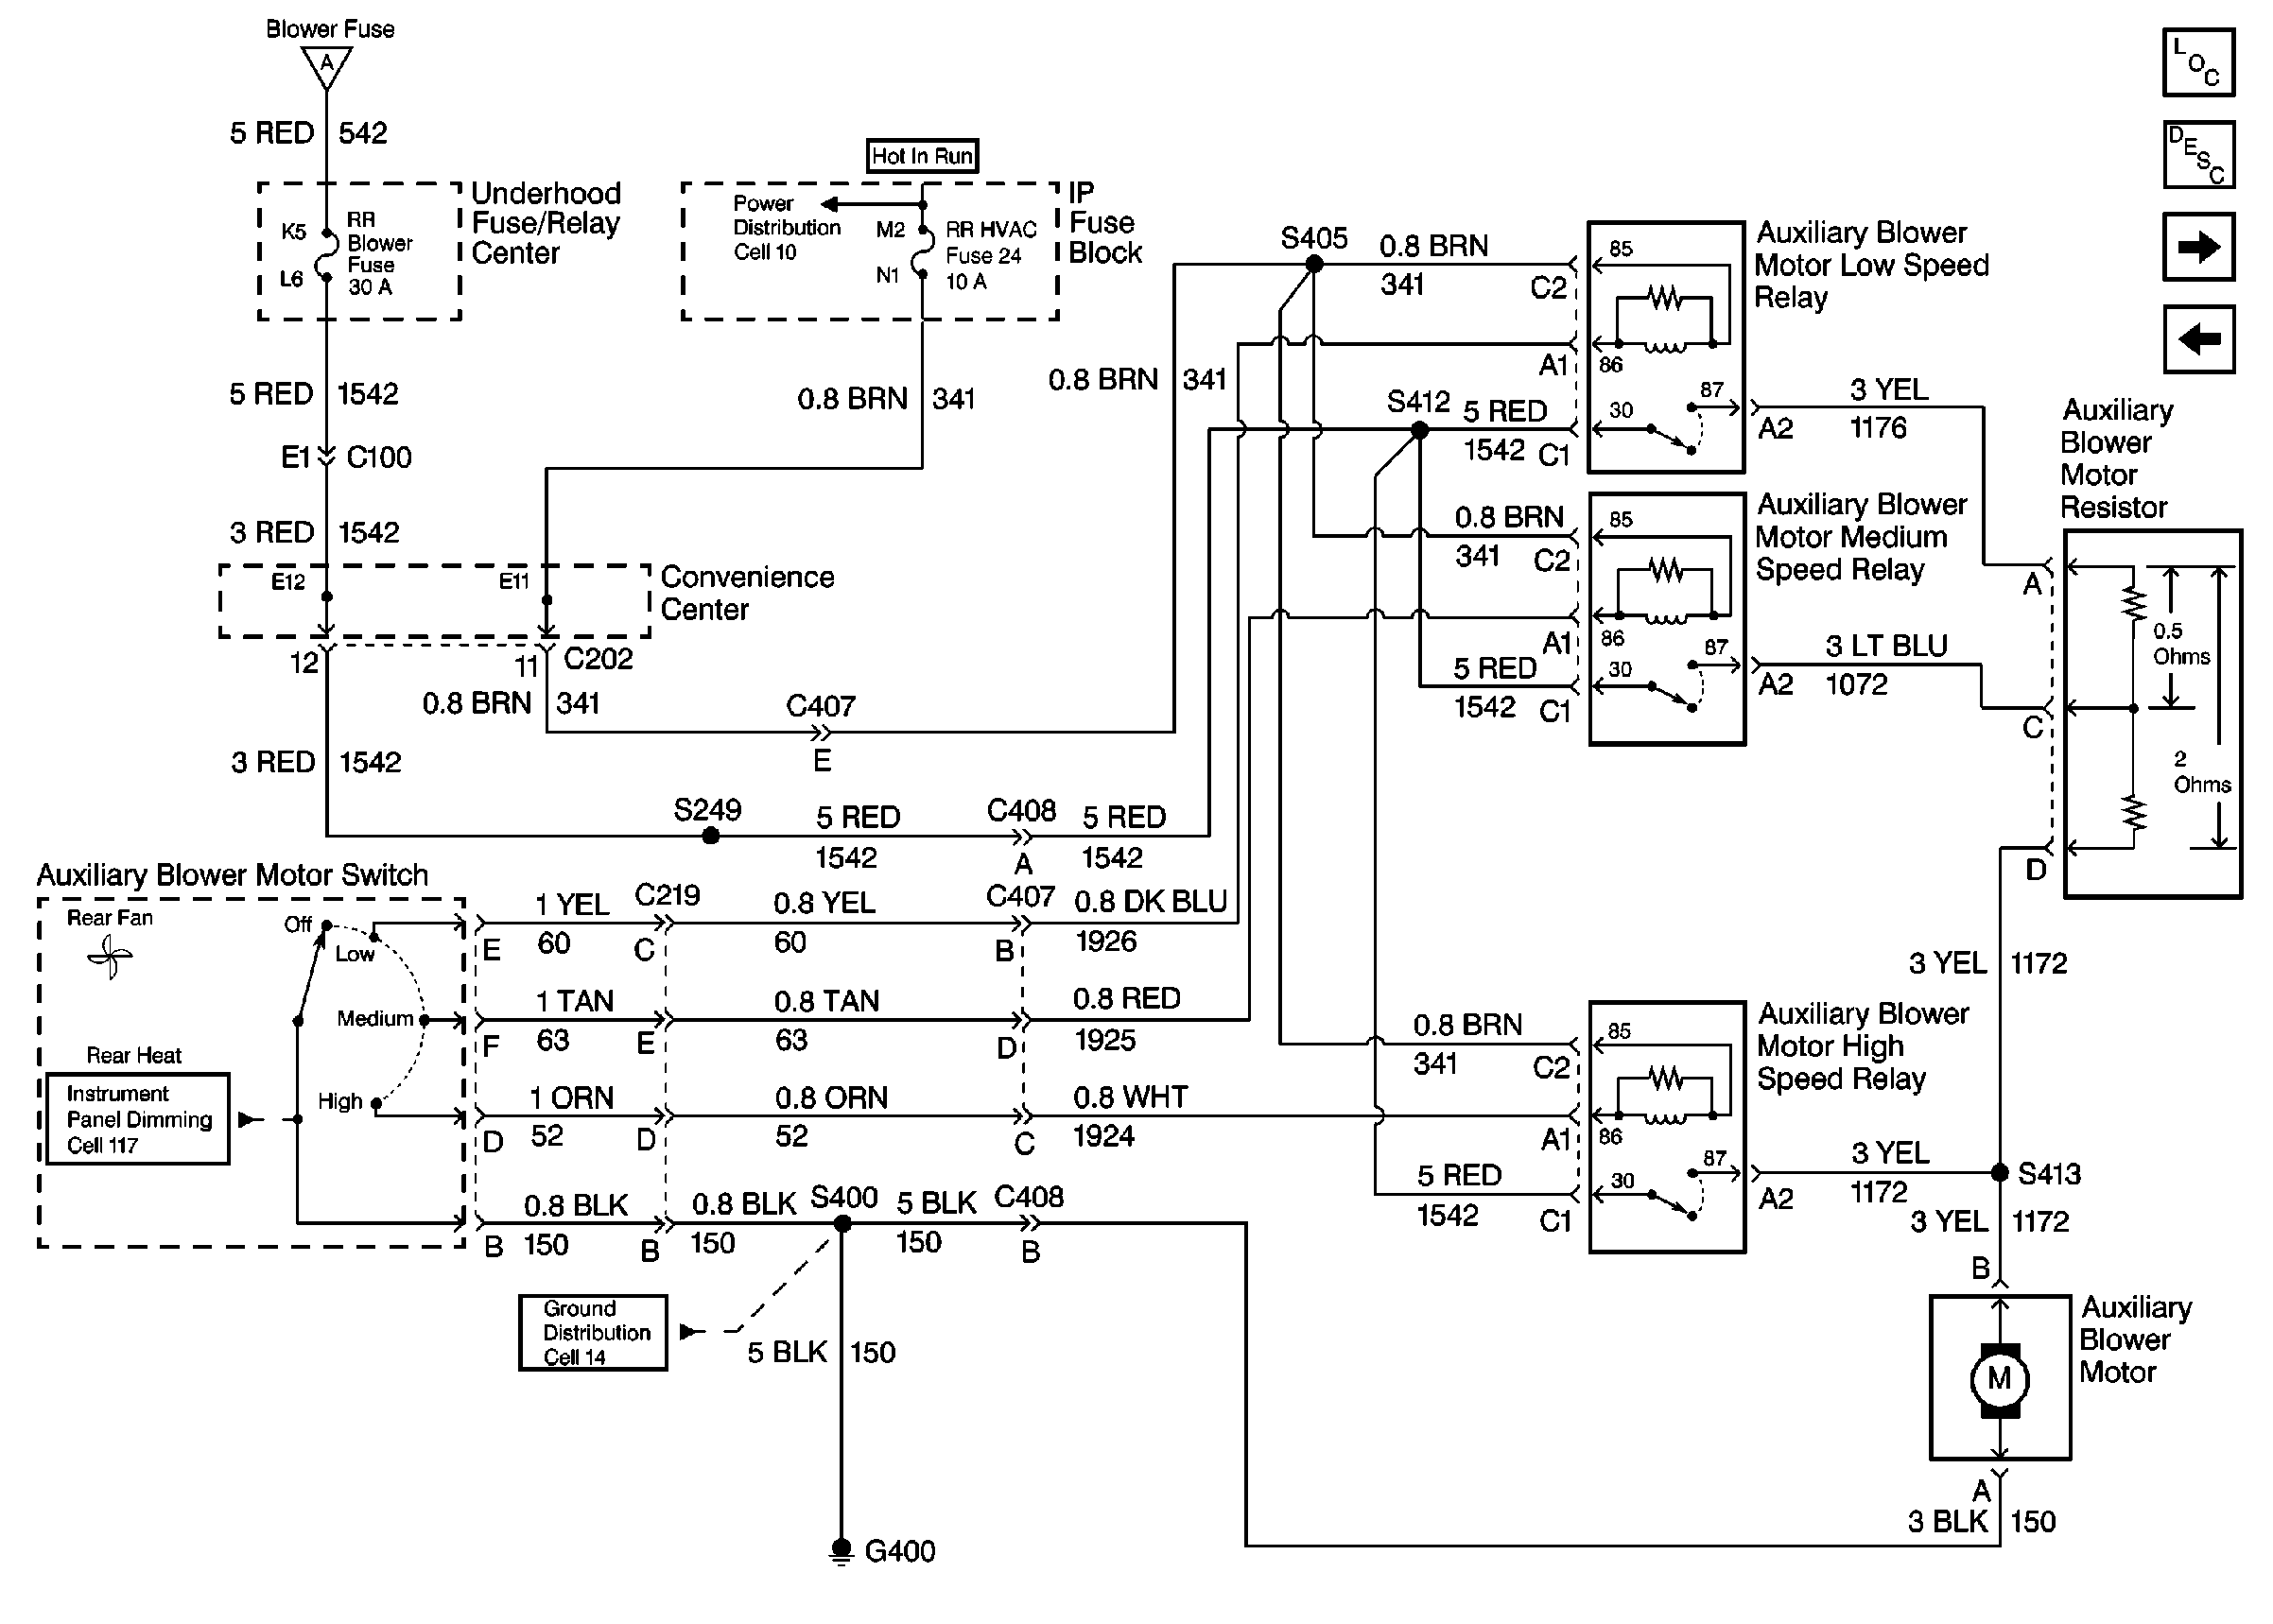 1997 Chevy Express Wiring Diagram Wiring Diagram System Just Image Just Image Ediliadesign It